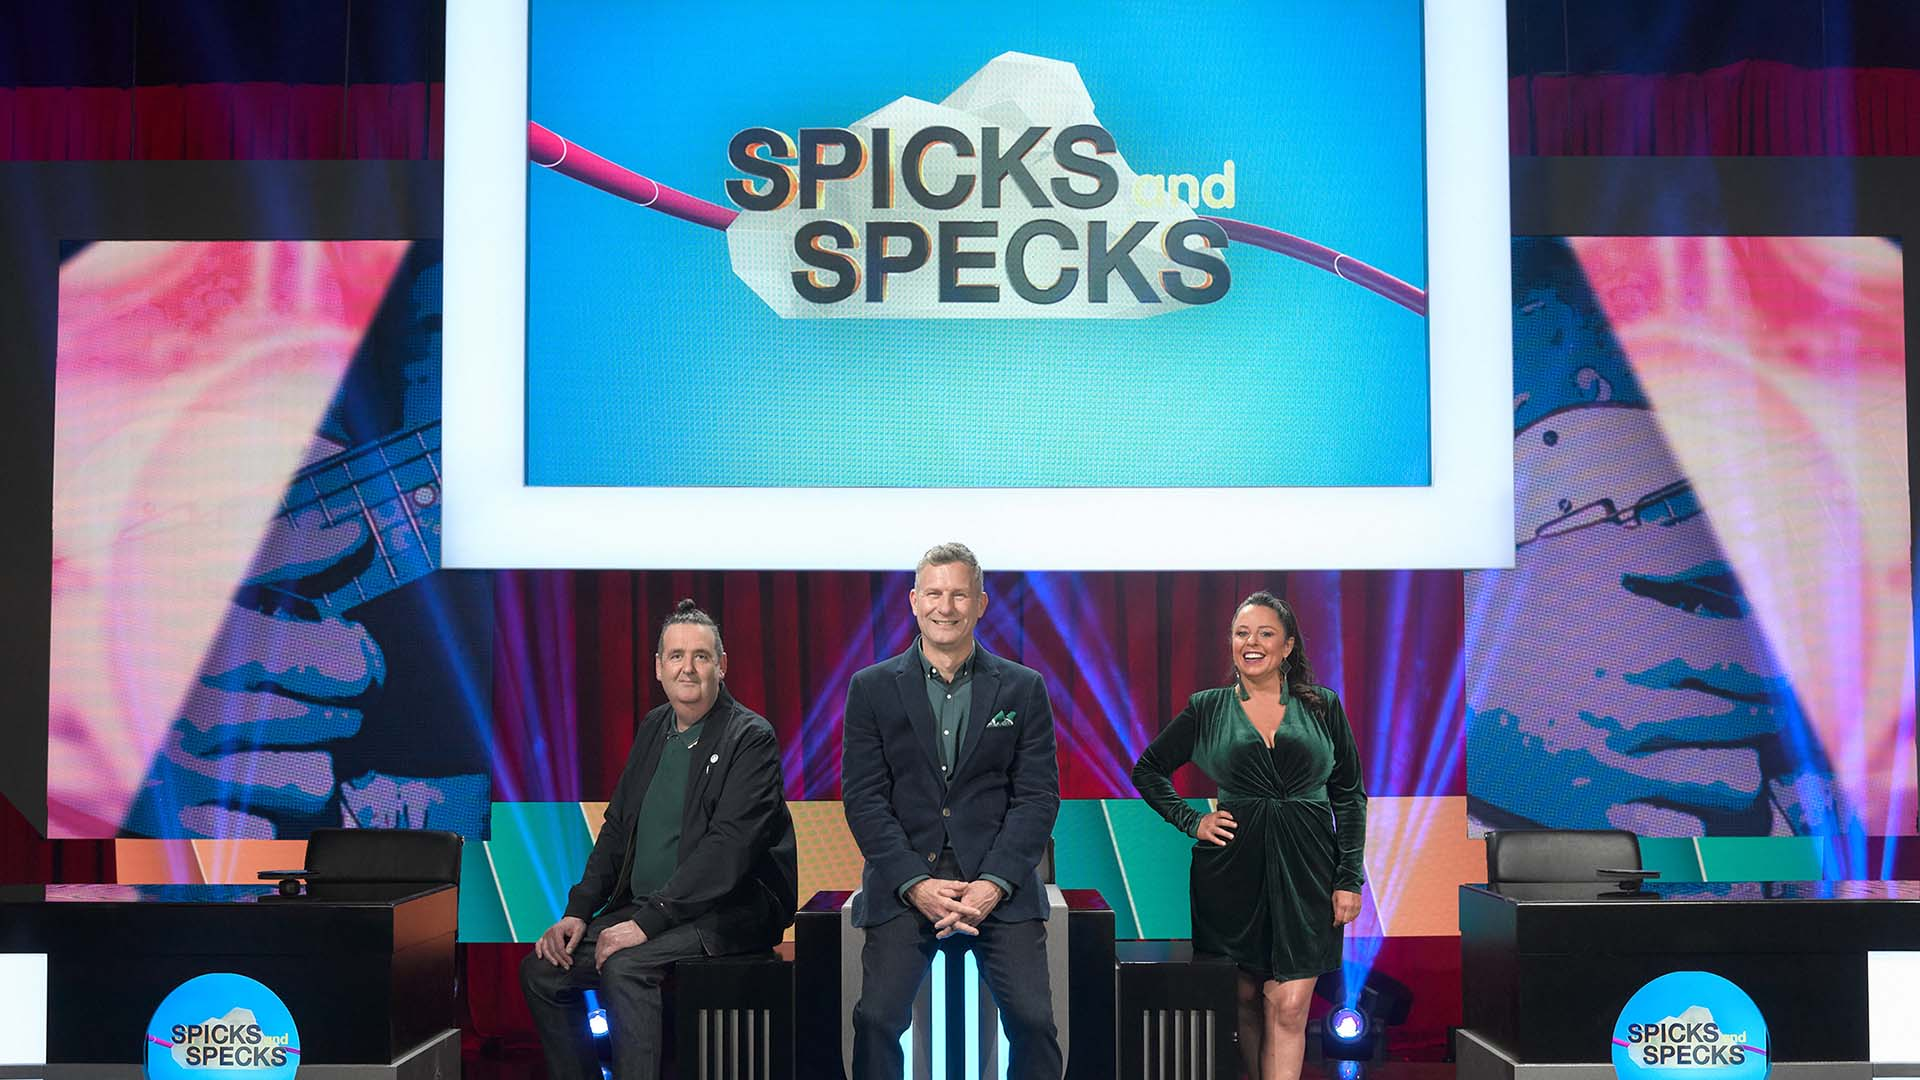 The ABC Is Bringing Back 'Spicks and Specks' in 2021 for a Full New Season